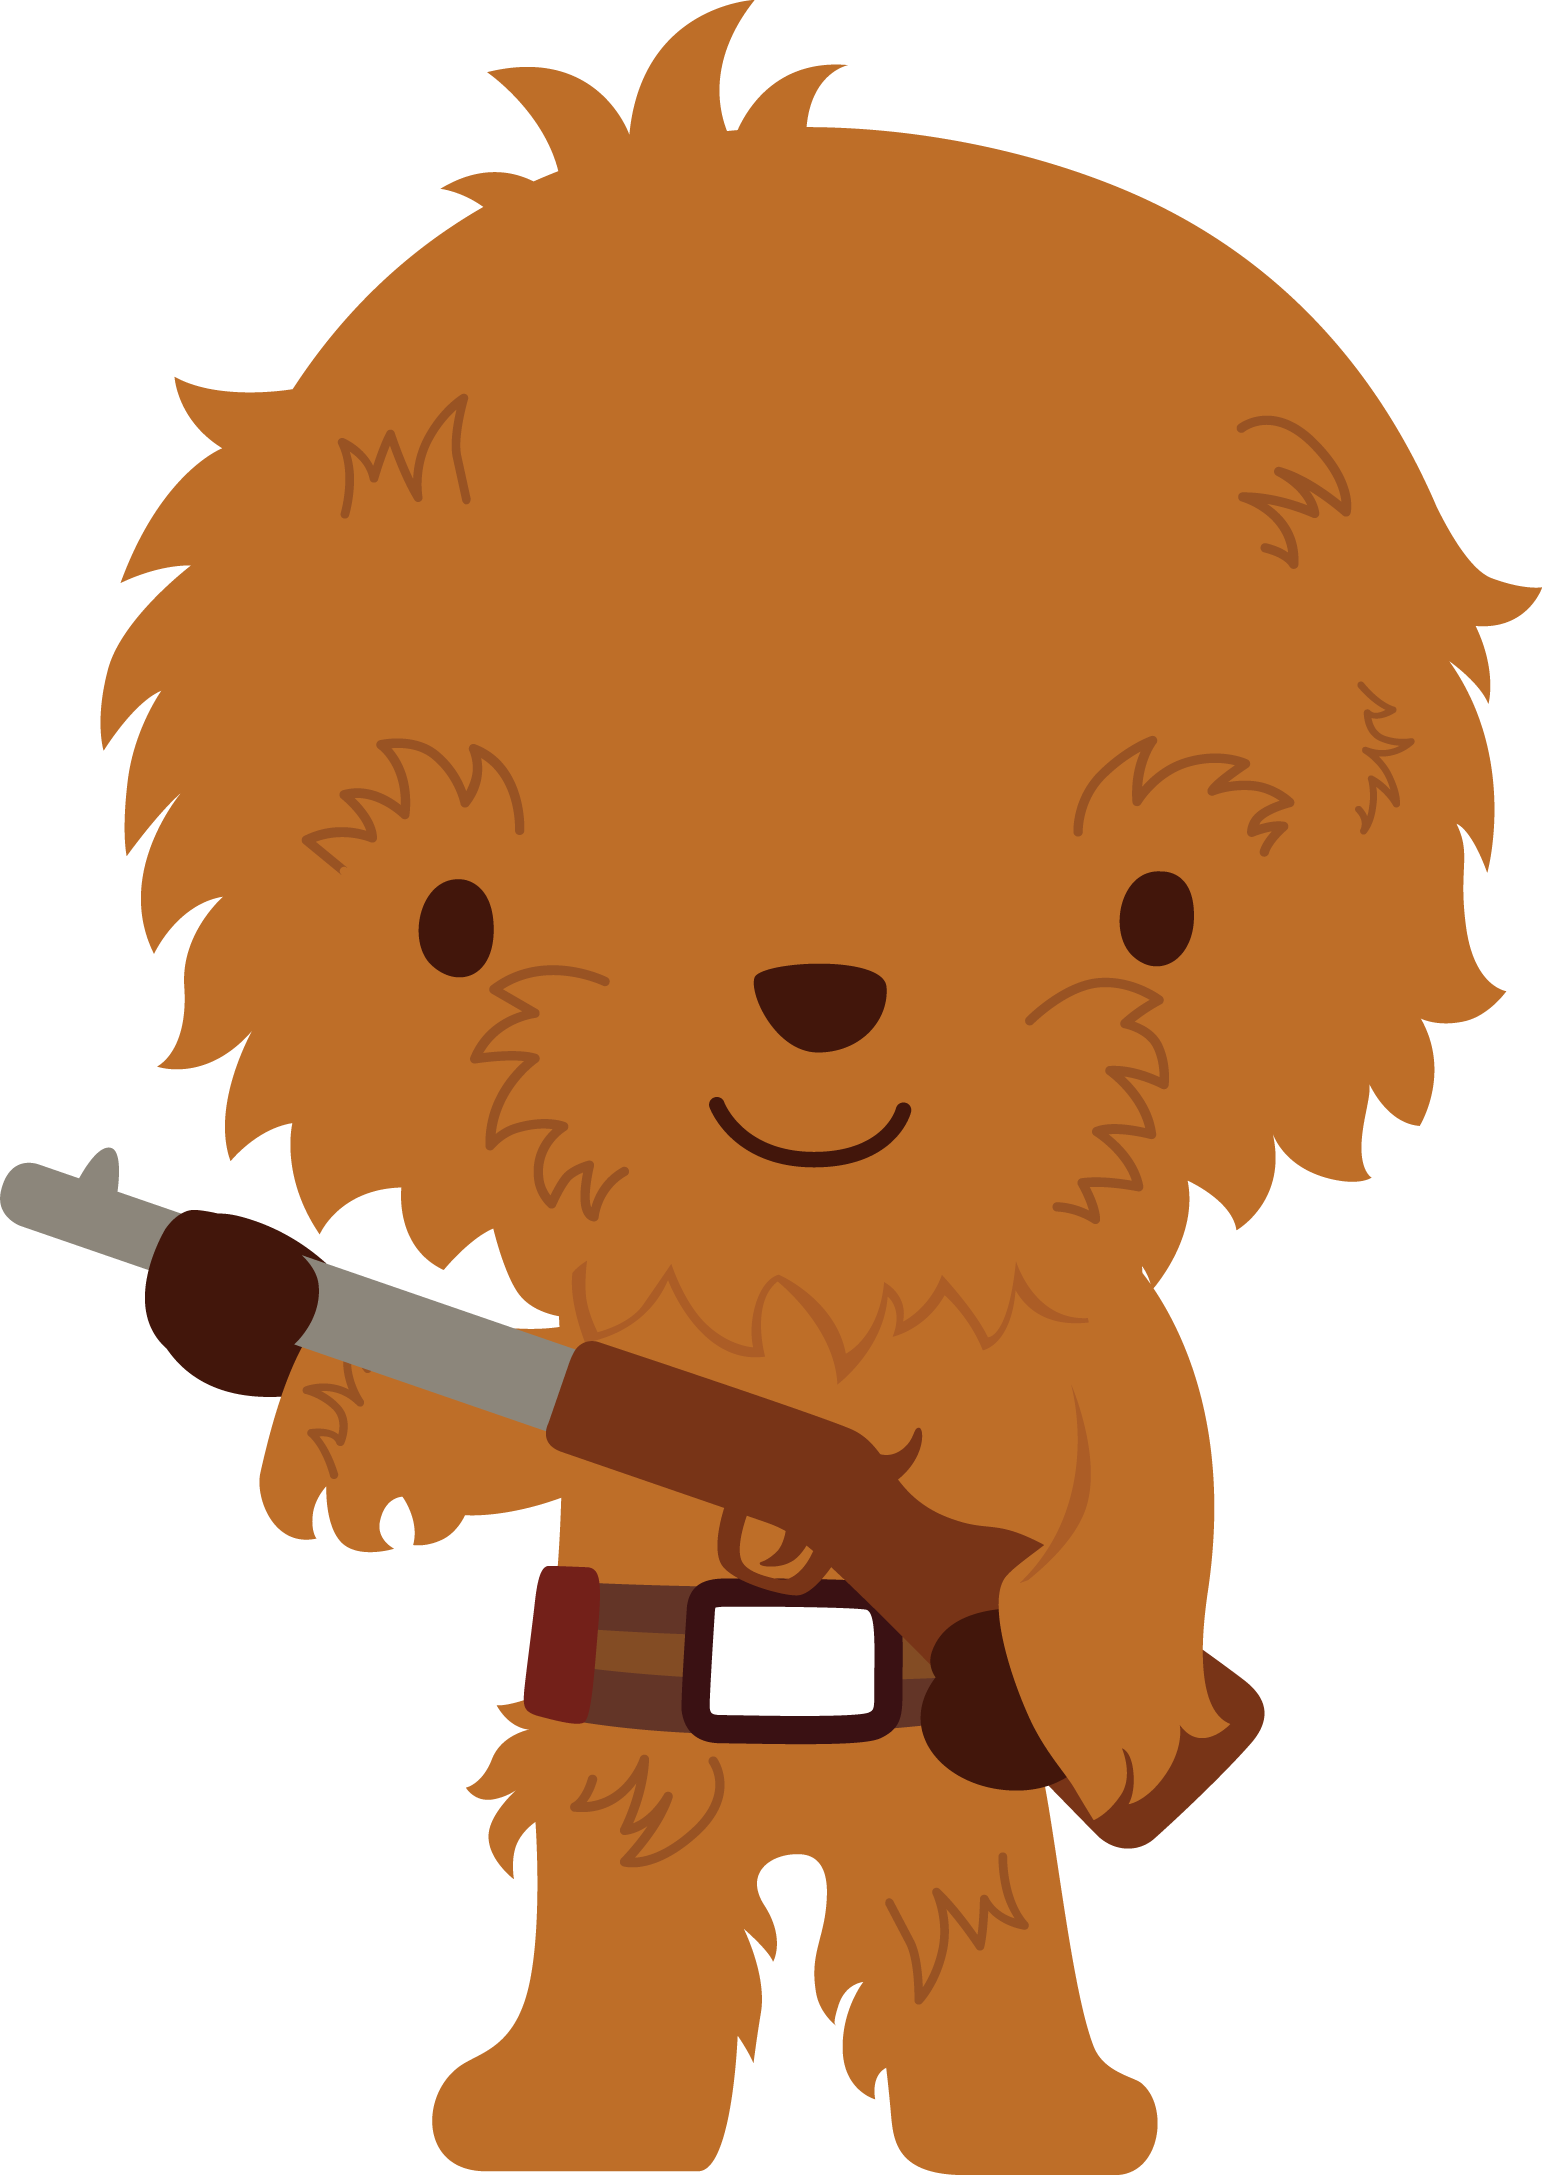 Chewbacca clipart baby. By chrispix d exb